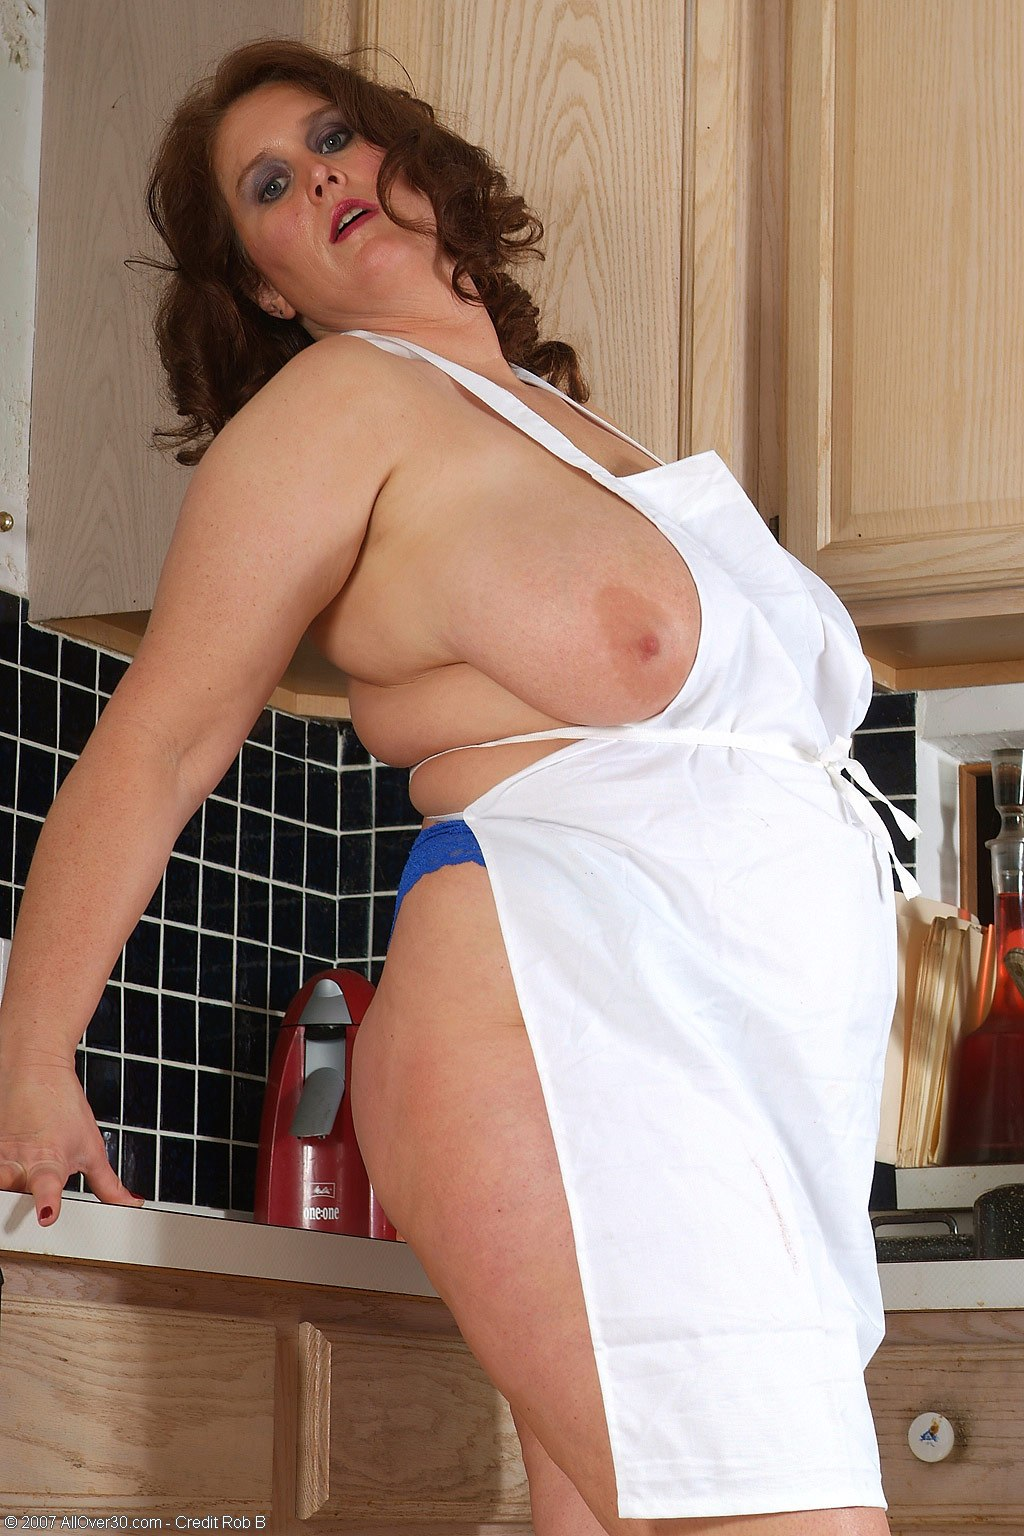 Better fat big tit milf galleries Great ass and